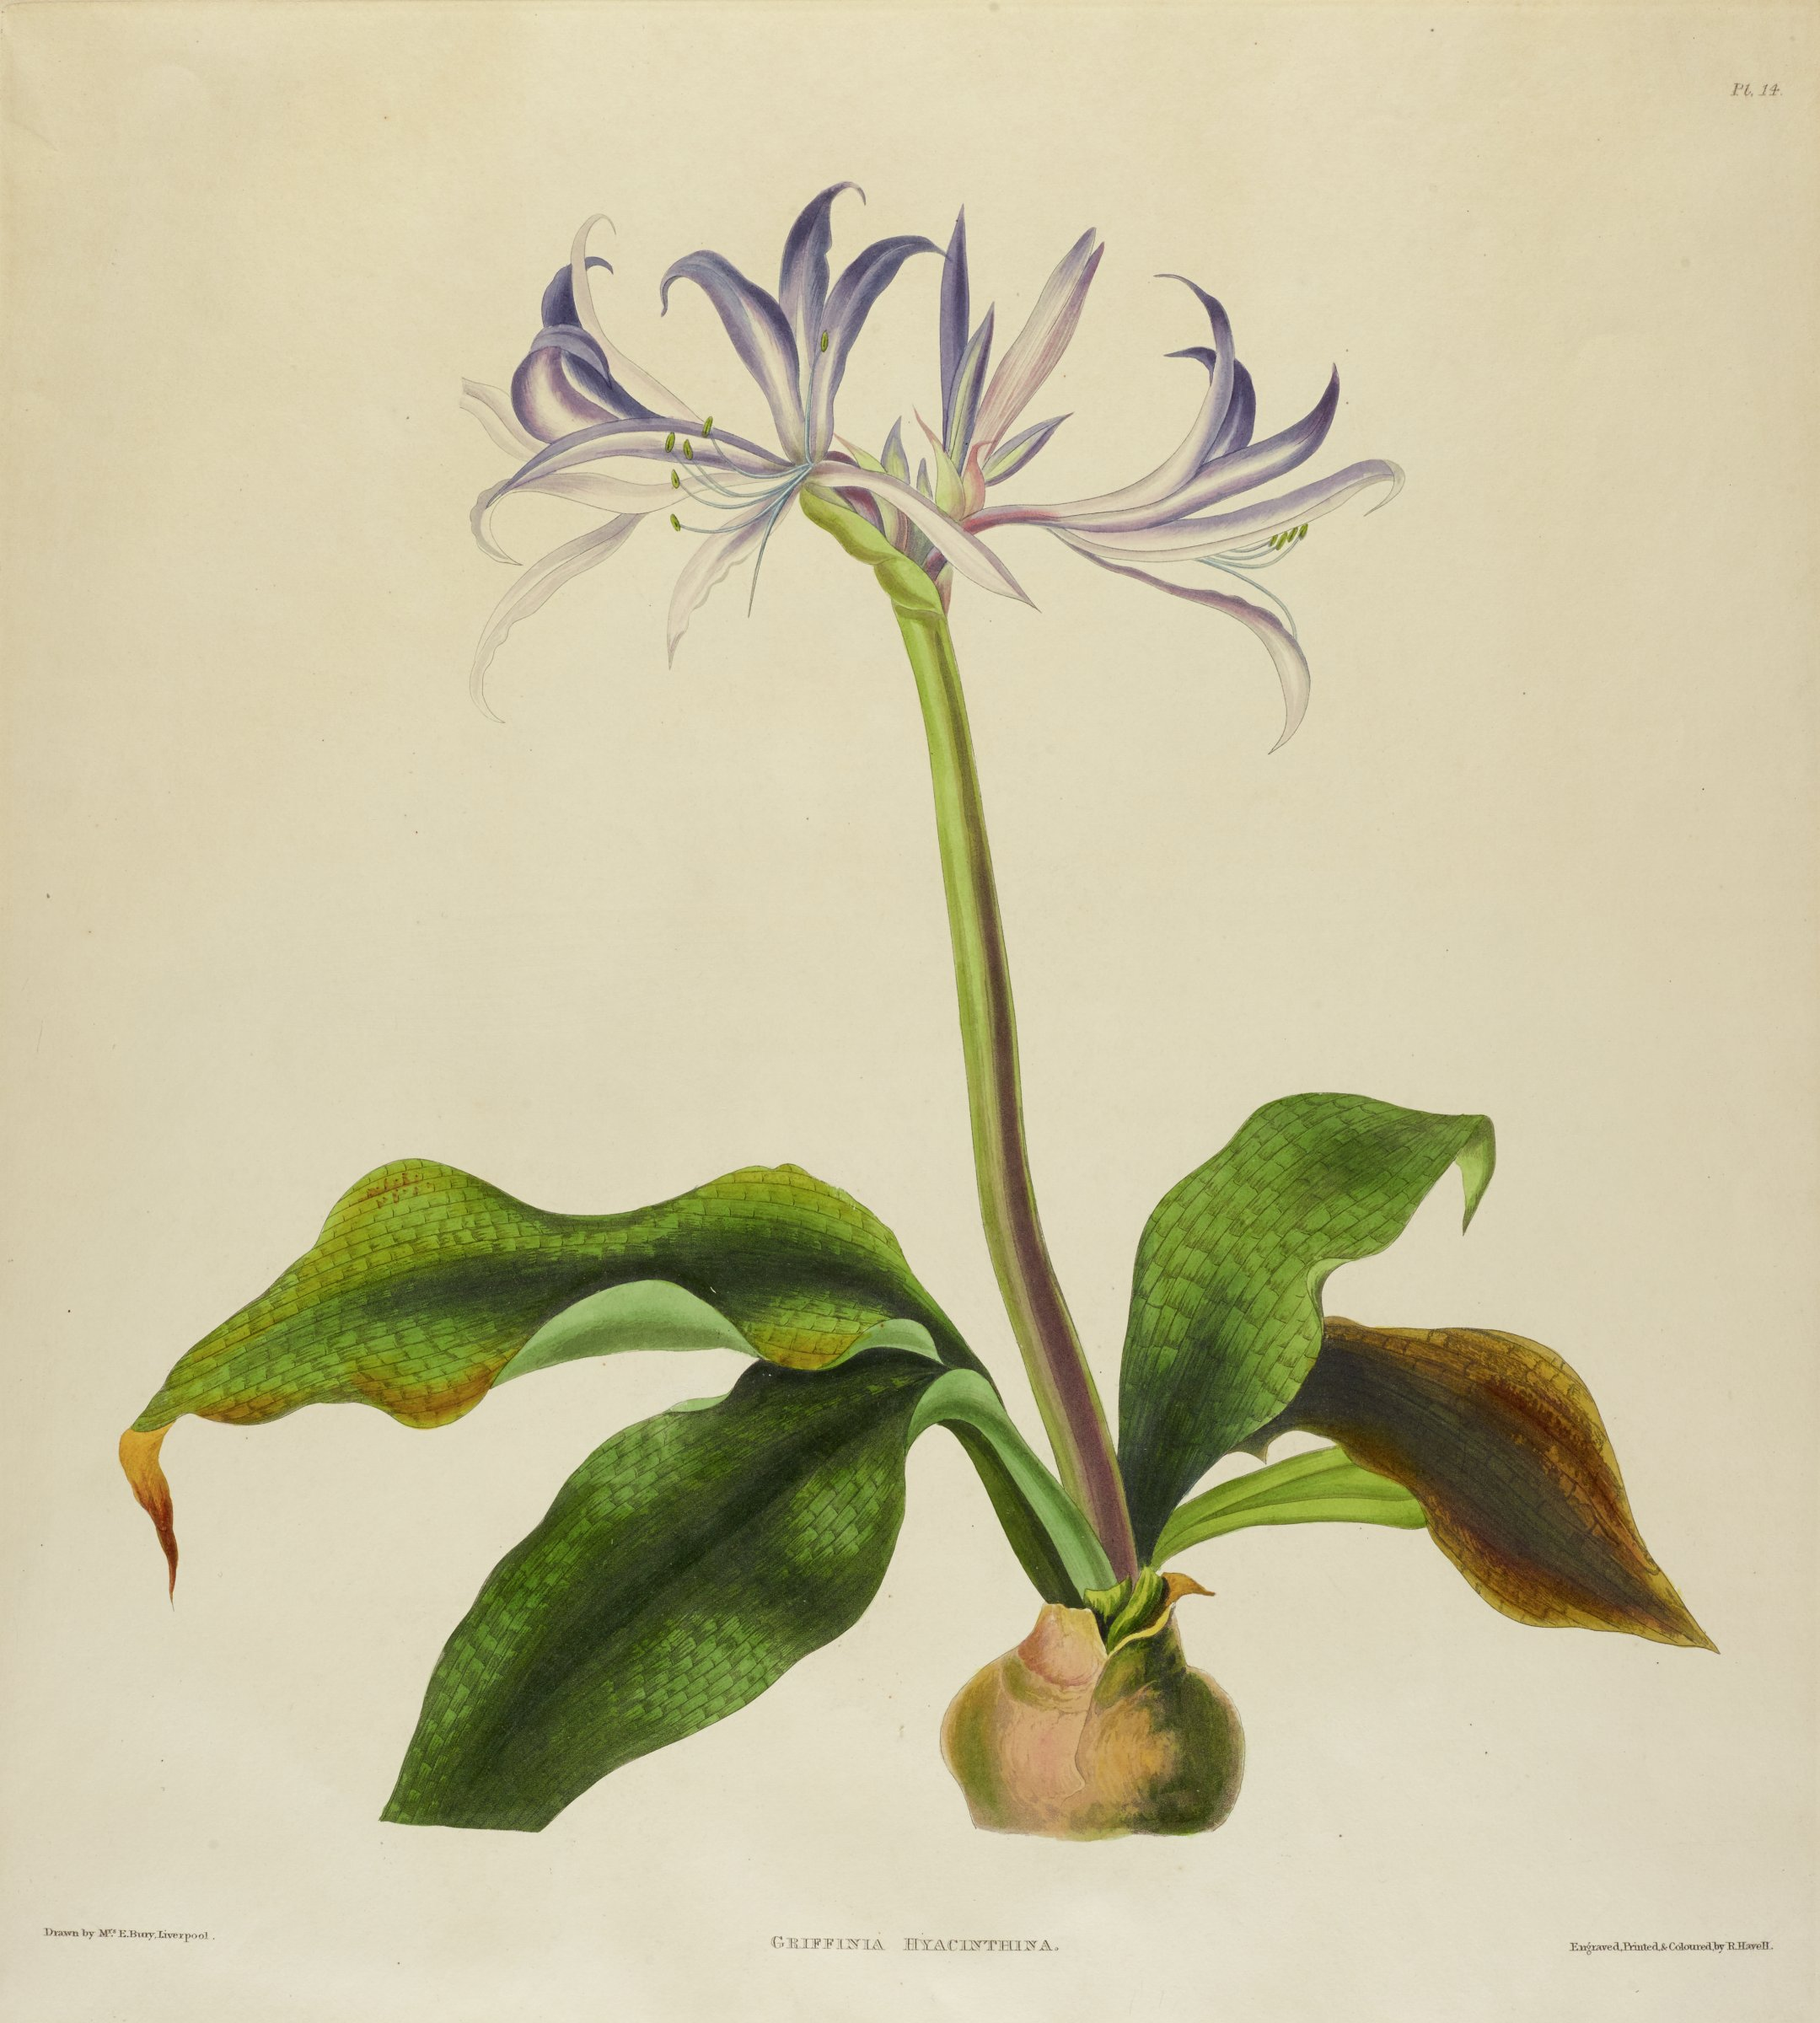 A botanical print depicting a flower with thin purple and white petals. The stem is thick with four large textured leaves.